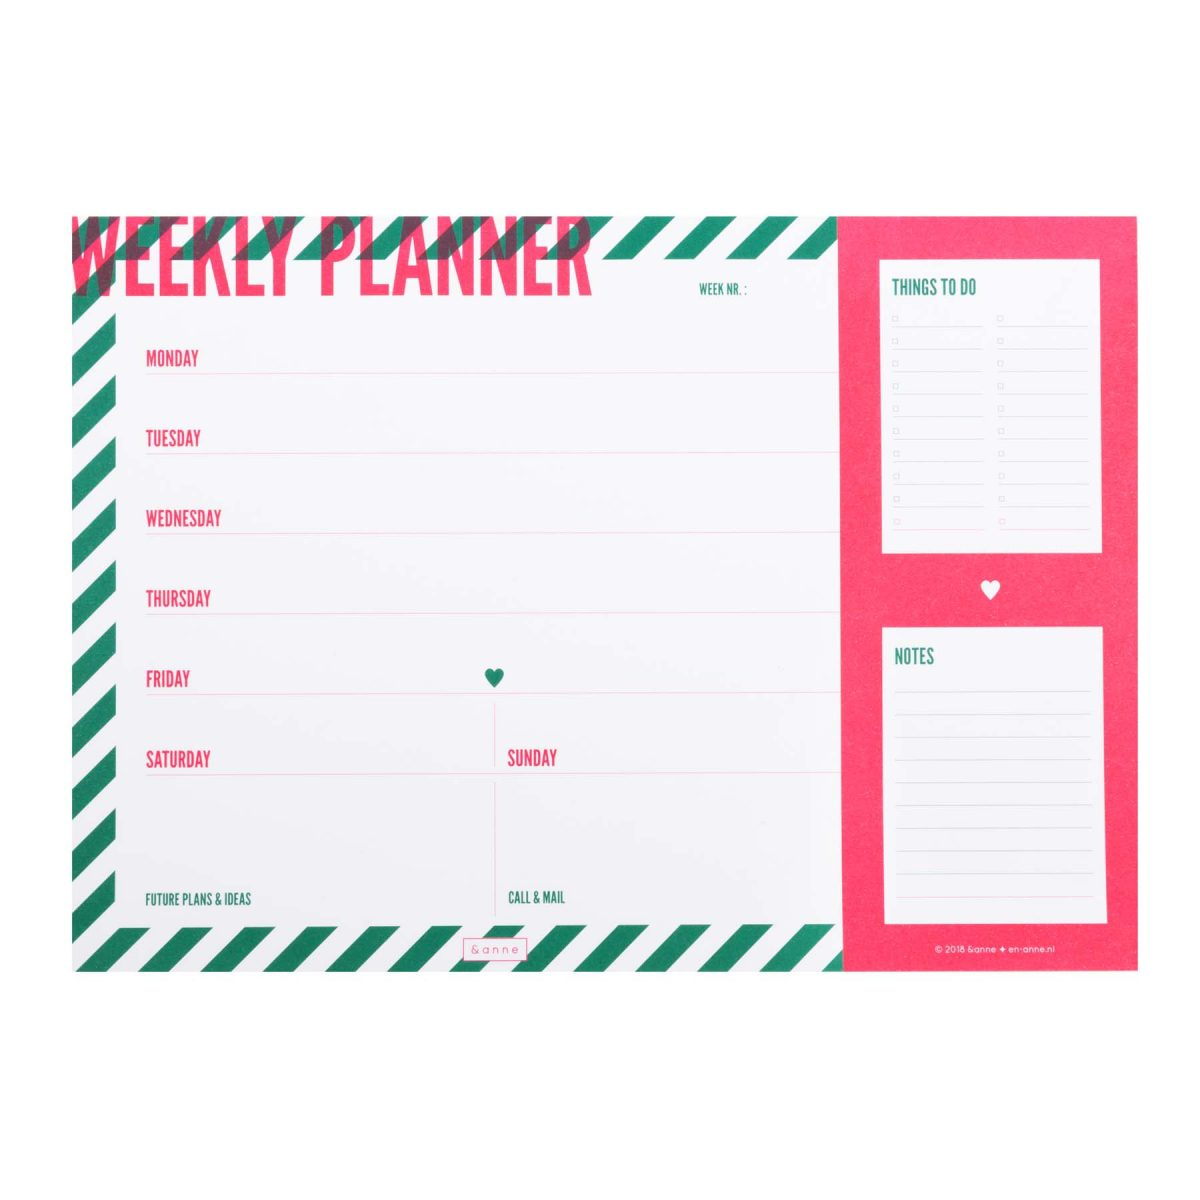 Weekly planner by &anne - Stationery